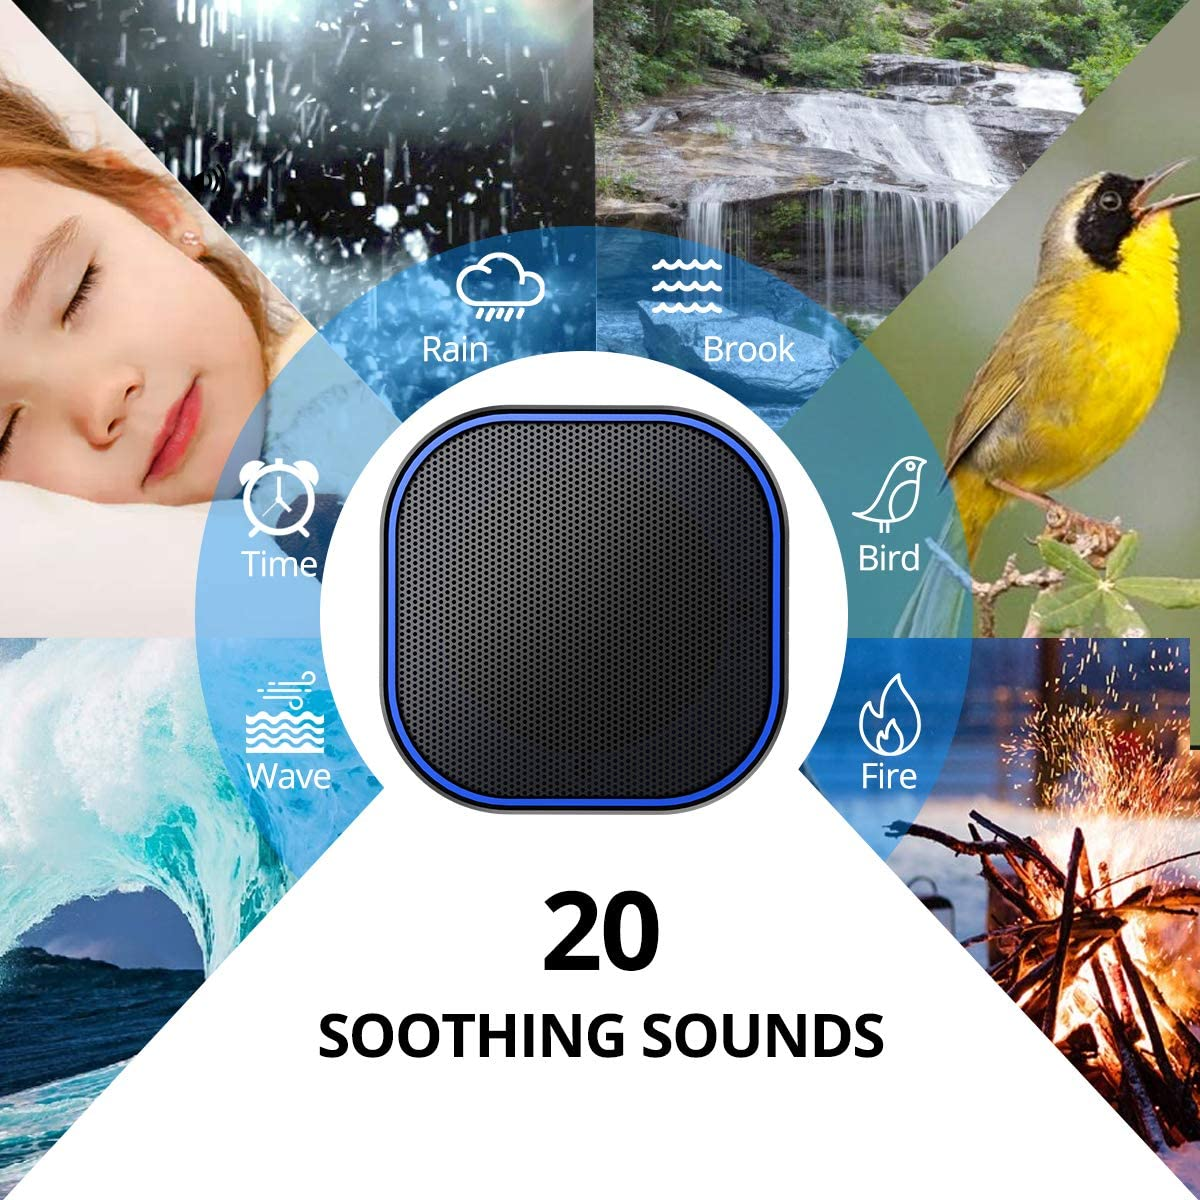 Magicteam Sound Machine White Noise Machine with 20 Non Looping Natural Soothing Sounds and Memory Function 32 levels of volume powered by AC or USB and Sleep Timer Sound Therapy for Baby Kids Adults.